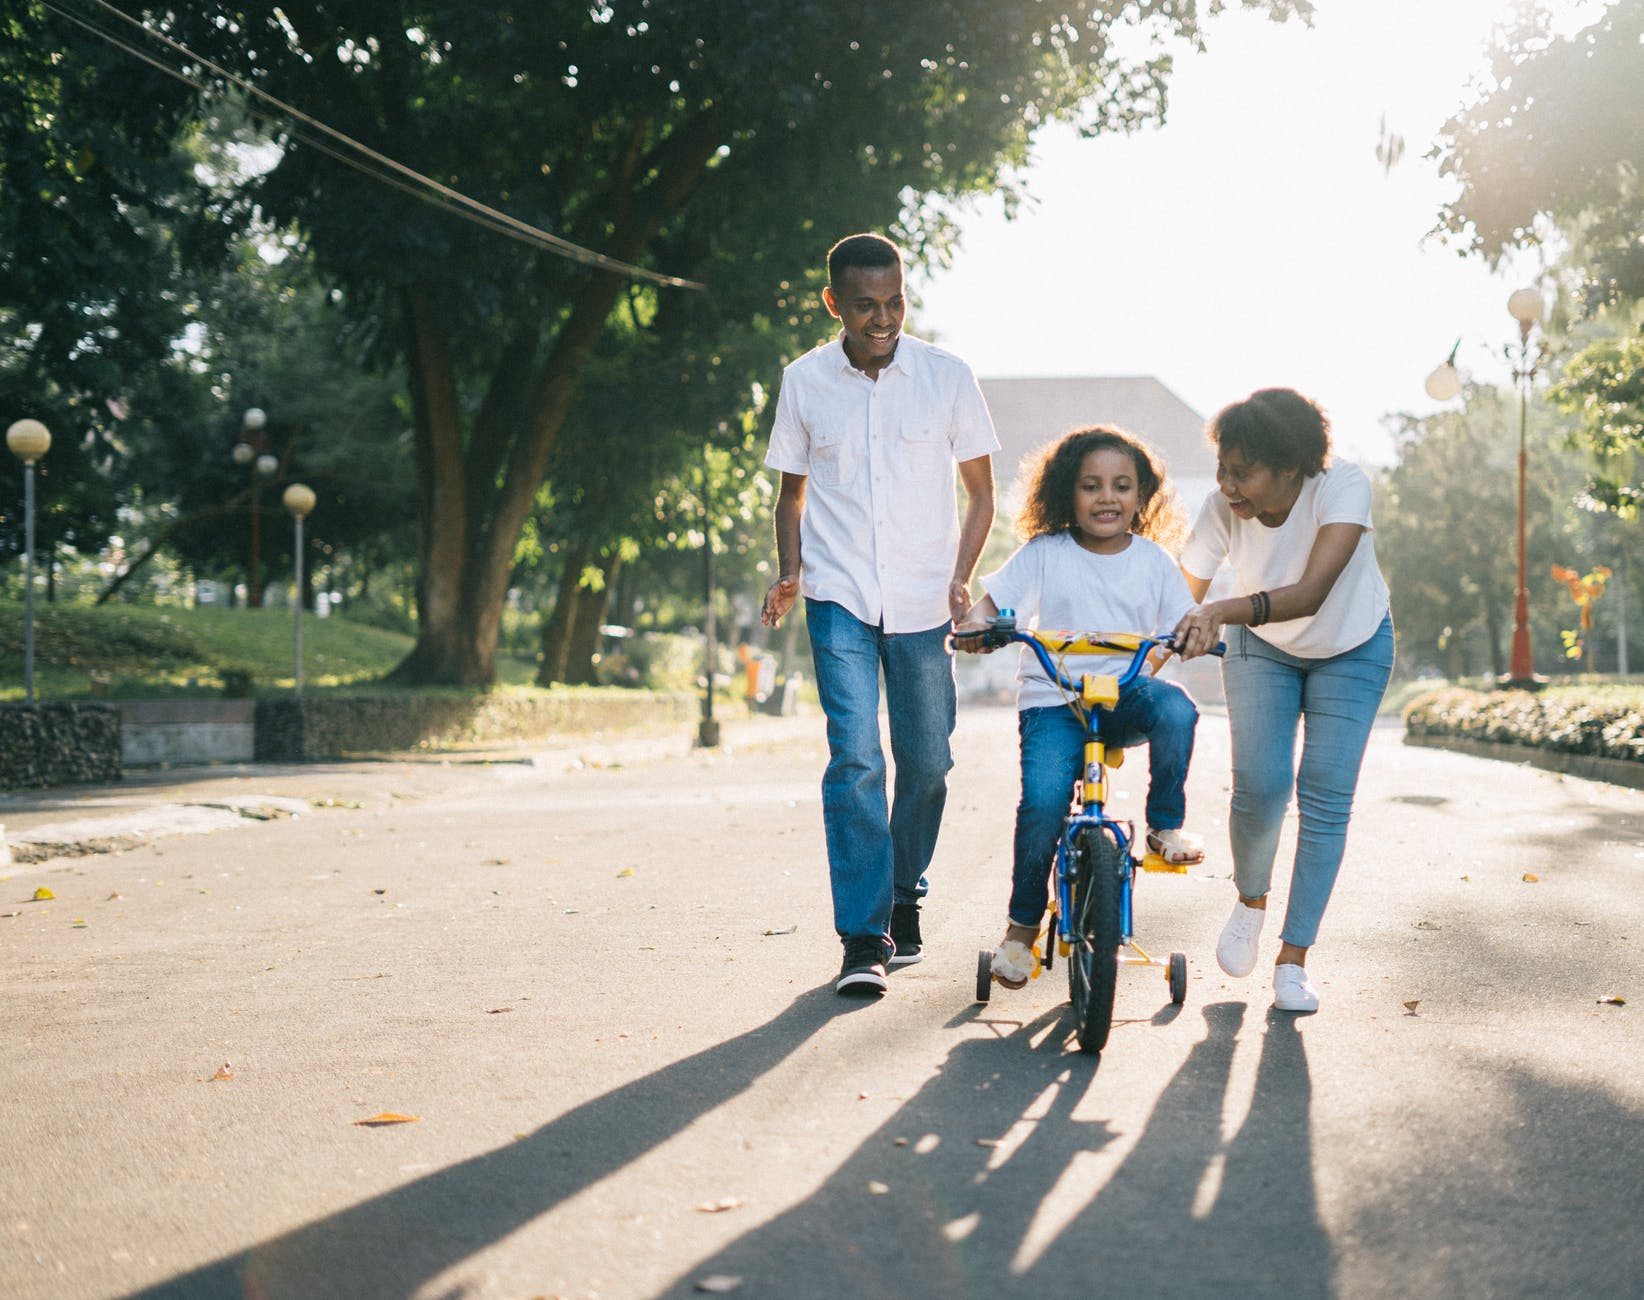 Parents teaching their child how to ride a bike